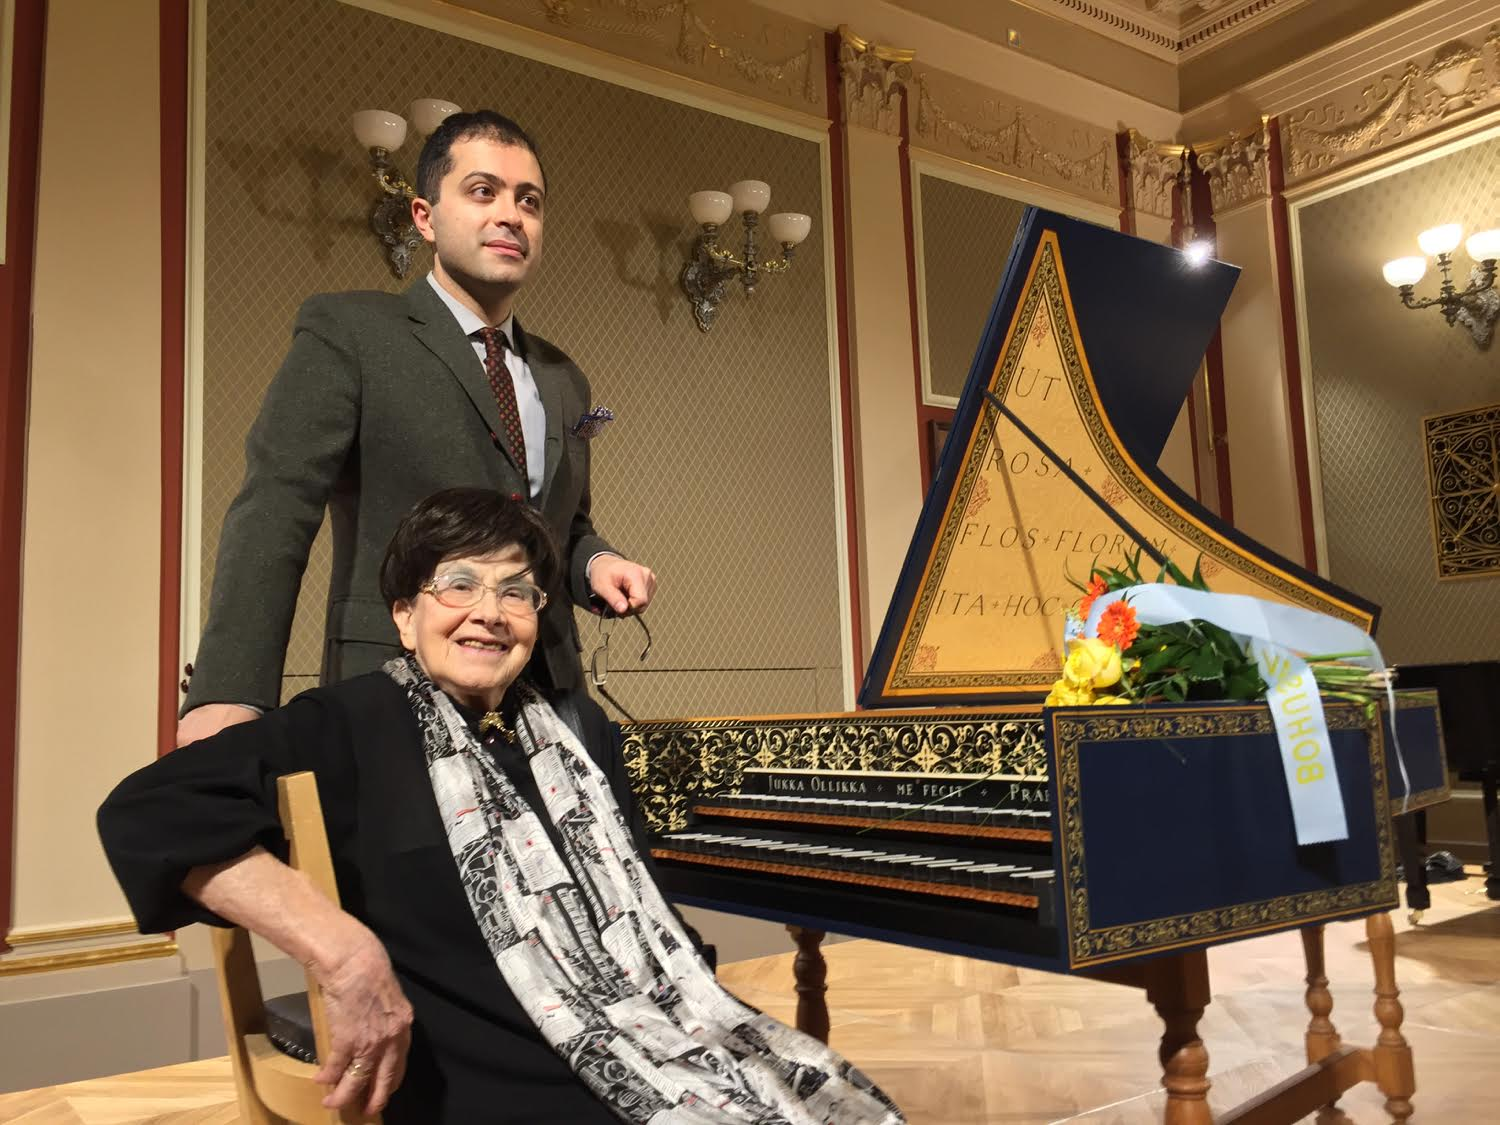 Zuzana Růžičková and her student Mahan Esfahani together at the harpsichord